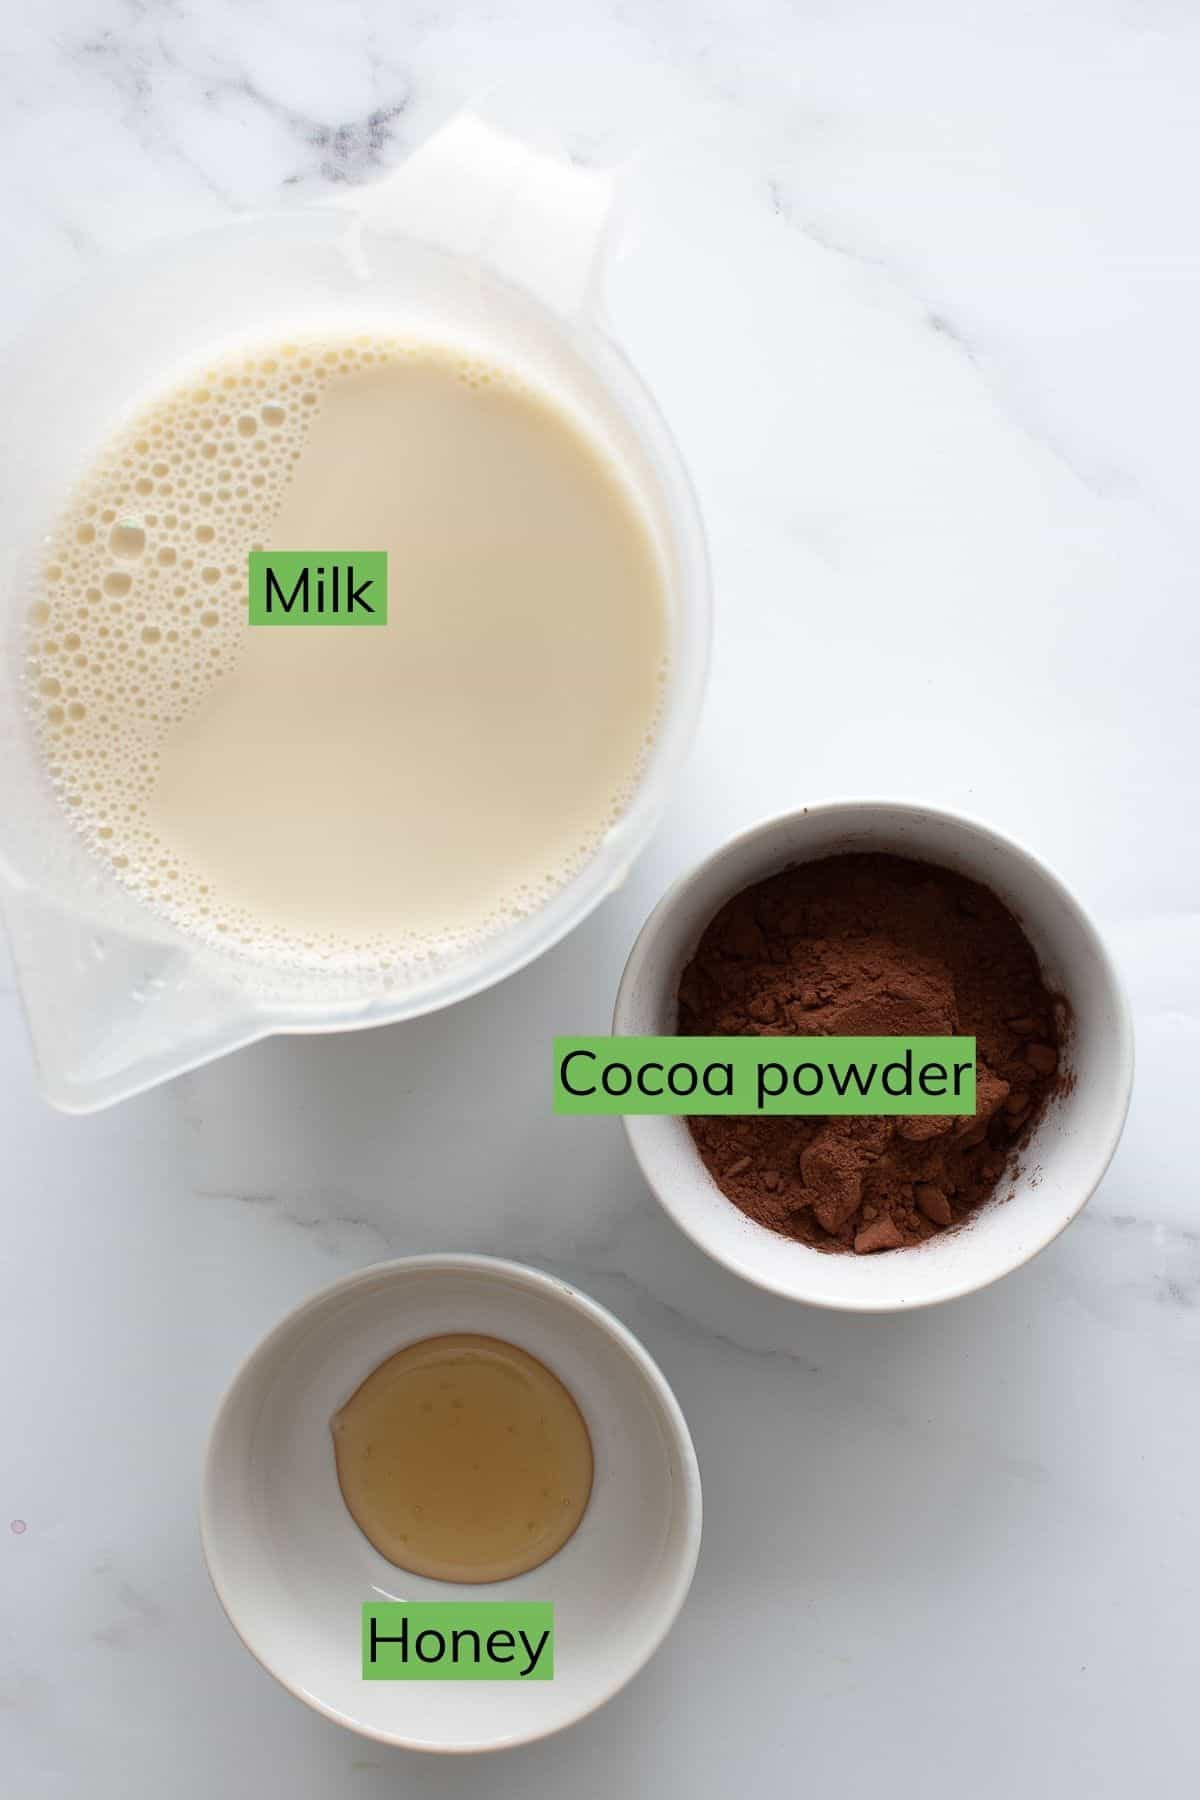 Cocoa powder, milk and honey laid out on a table.